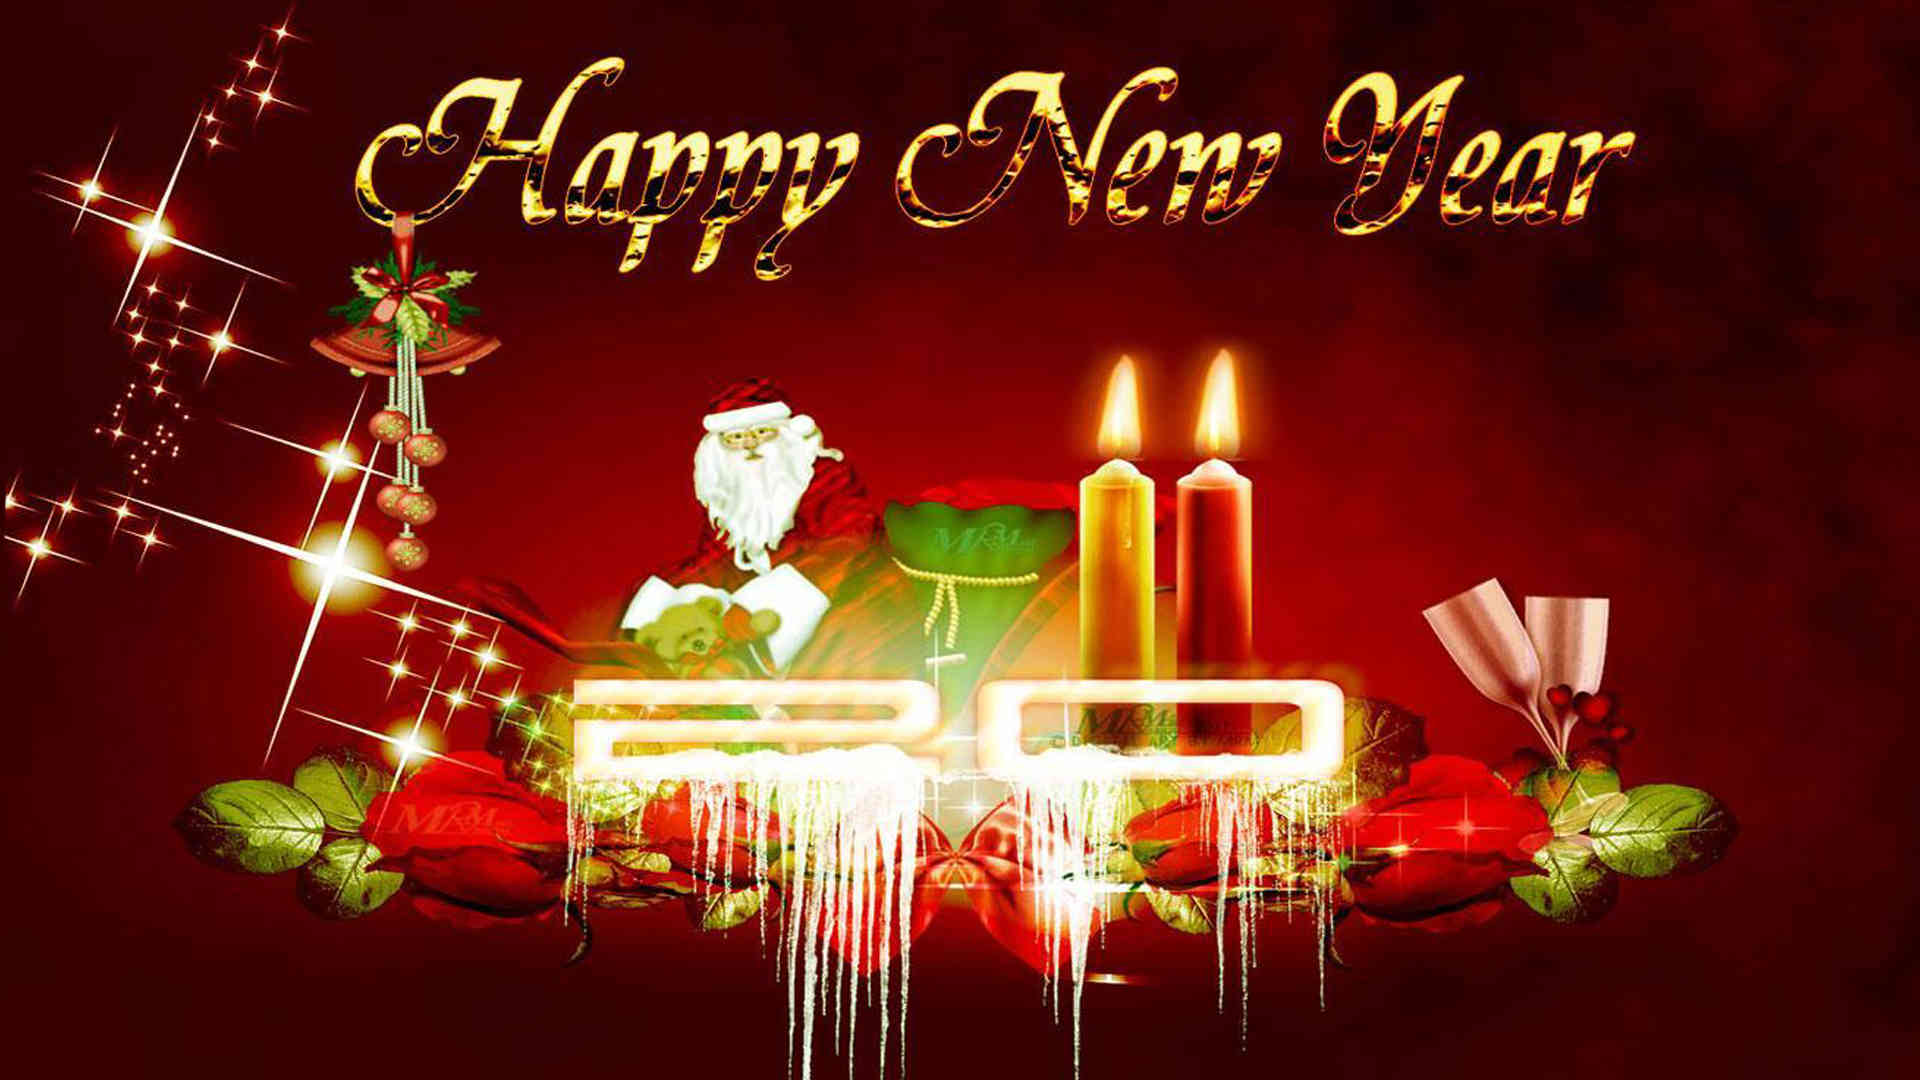 happy new year greetings wishes hd wallpaper background